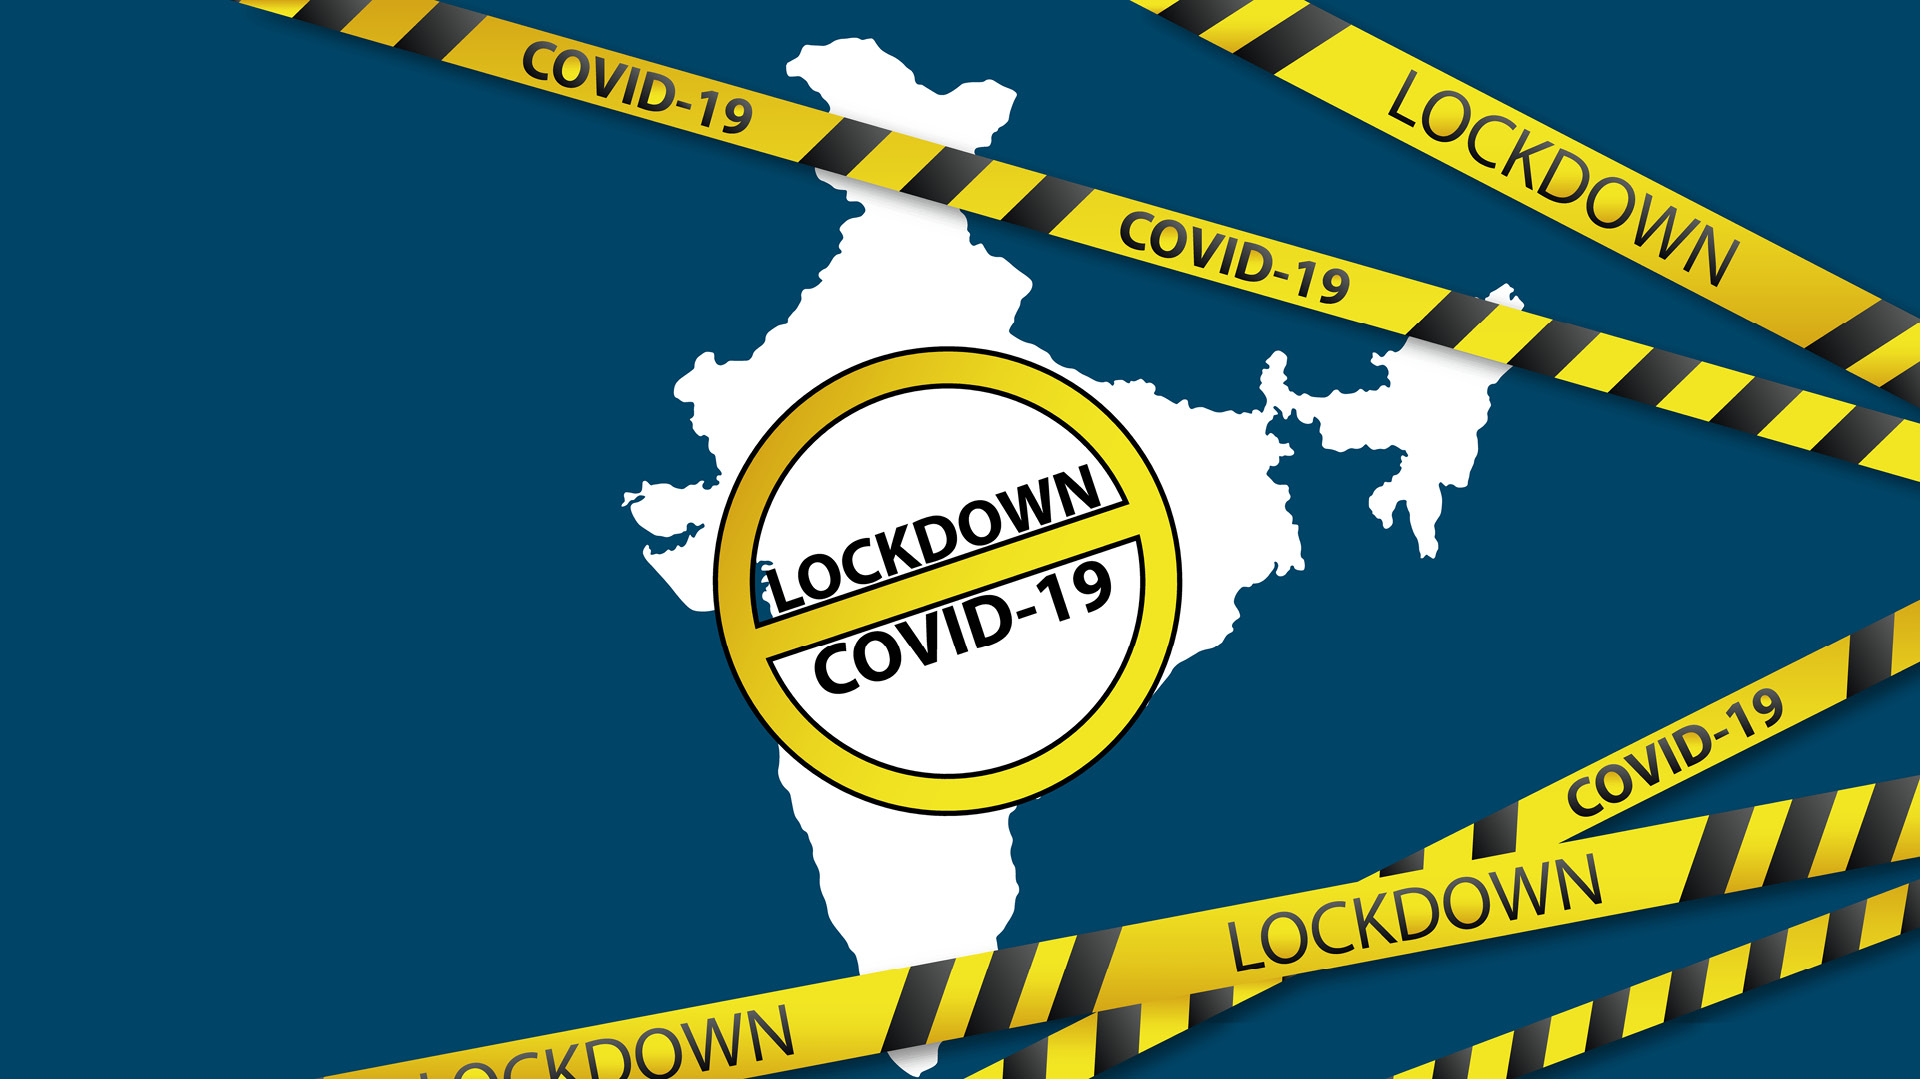 National Lockdown v/s Article 21